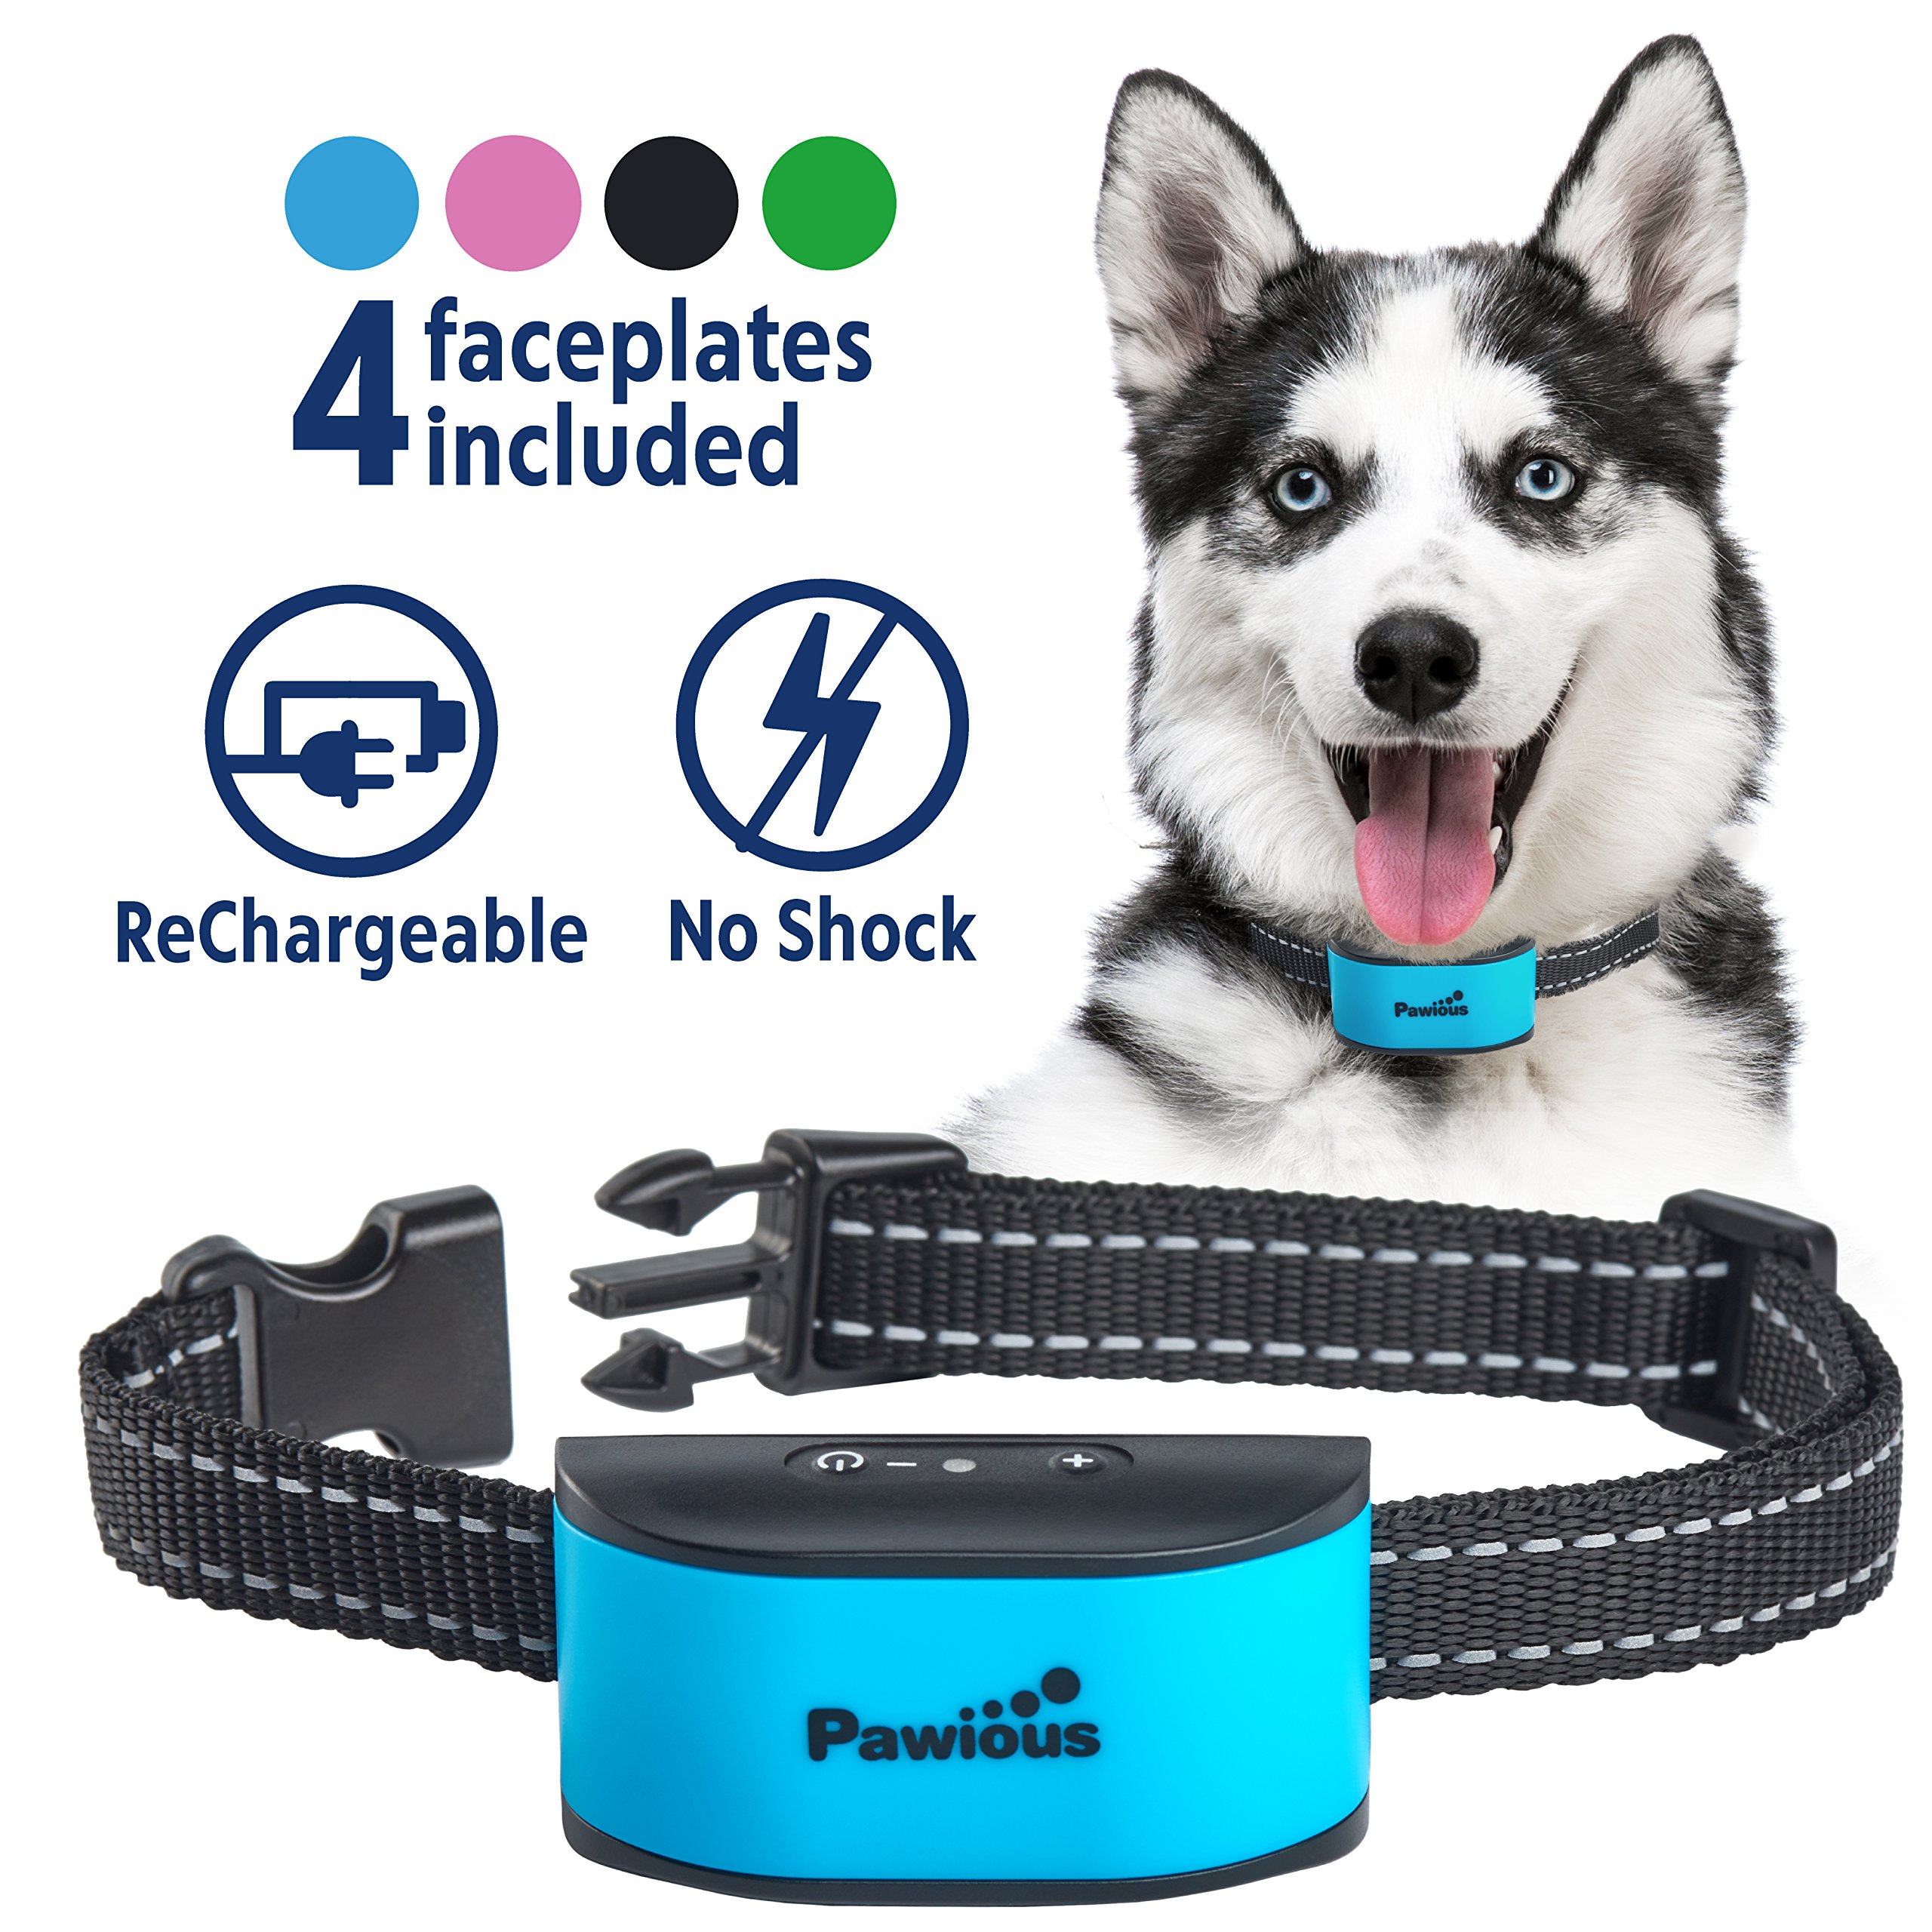 Bark Collar for Small Dogs - Humane No Shock Rechargeable Anti Barking Collar - 4 Color Faceplates, No Harmful Prongs, Sound, Vibration, 7 Sensitivity Levels by Pawious